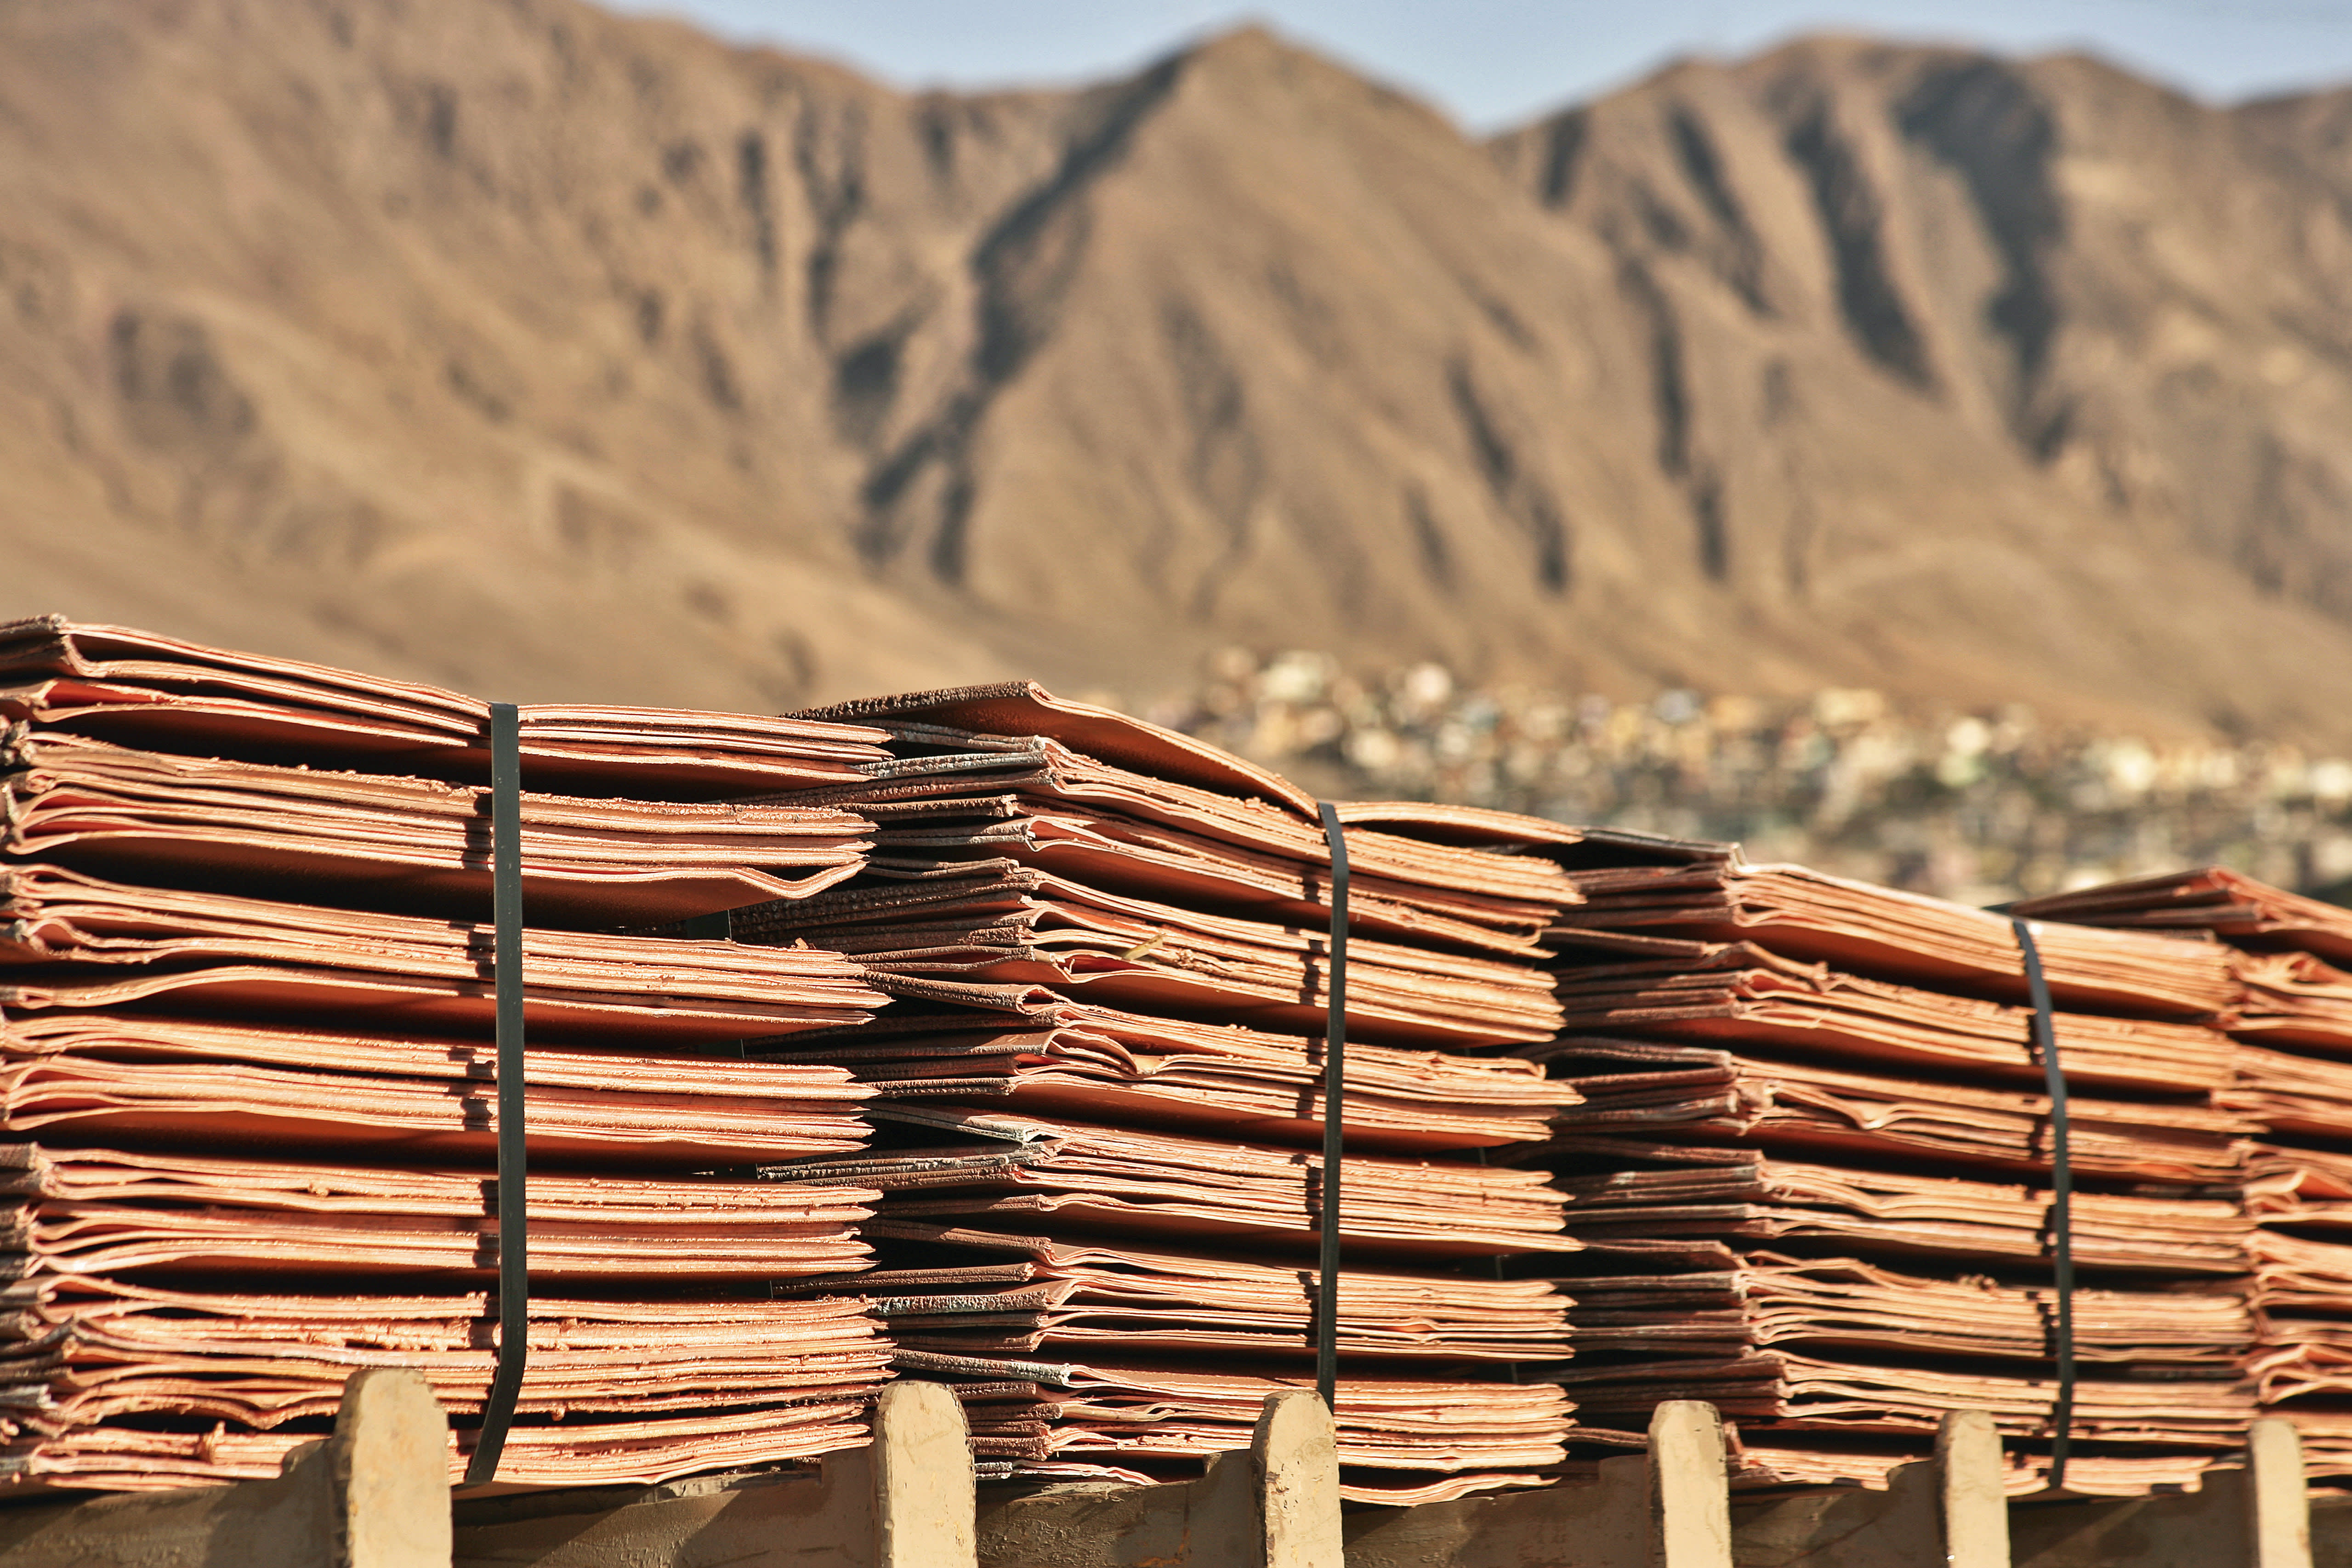 Mining giant BHP inks four renewable energy deals for Chilean copper sites